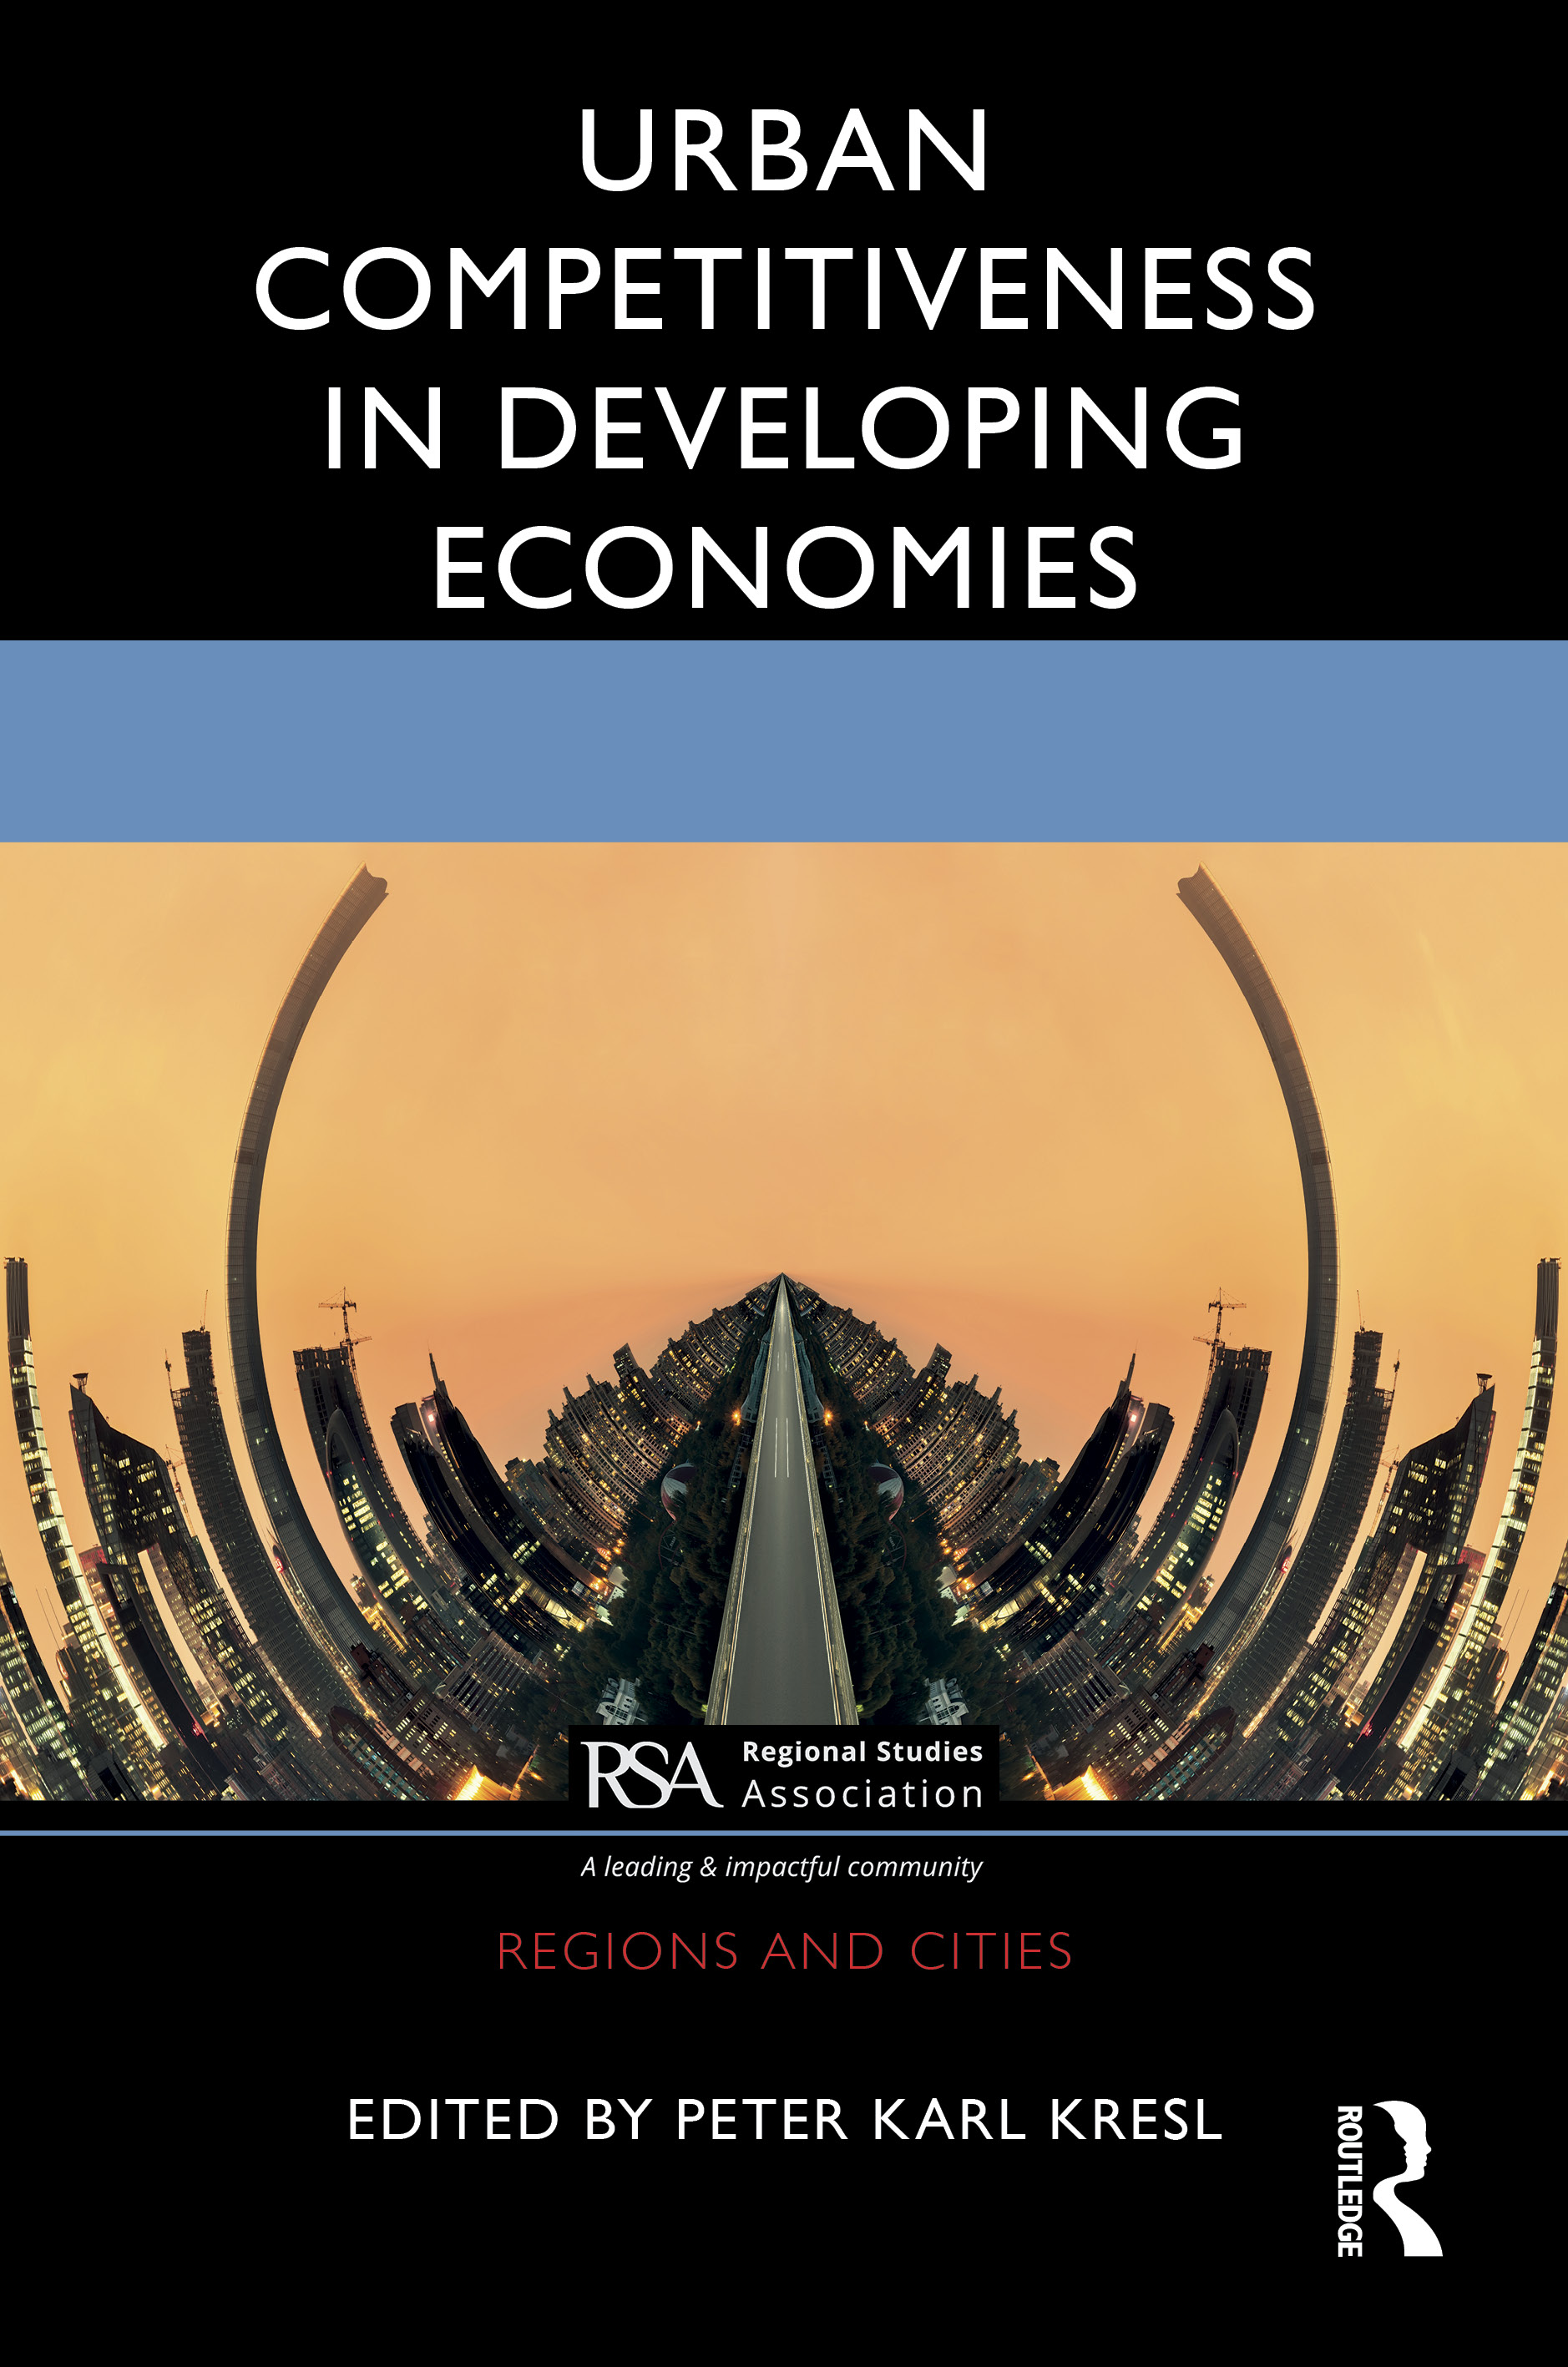 Urban Competitiveness in Developing Economies book cover